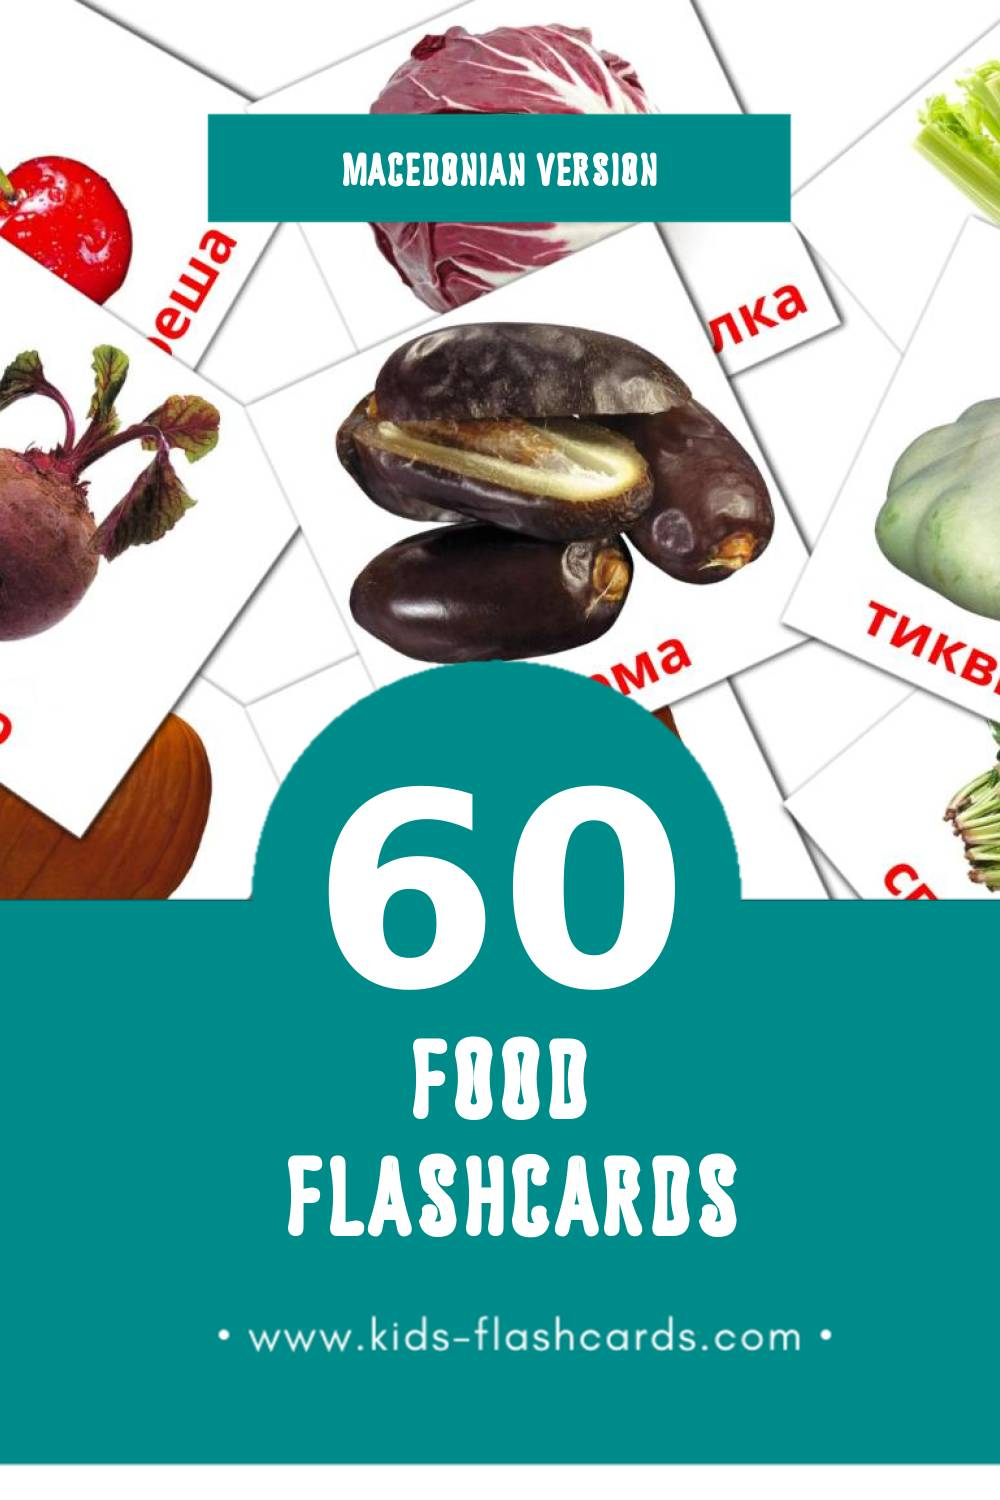 Visual Храна Flashcards for Toddlers (49 cards in Macedonian)